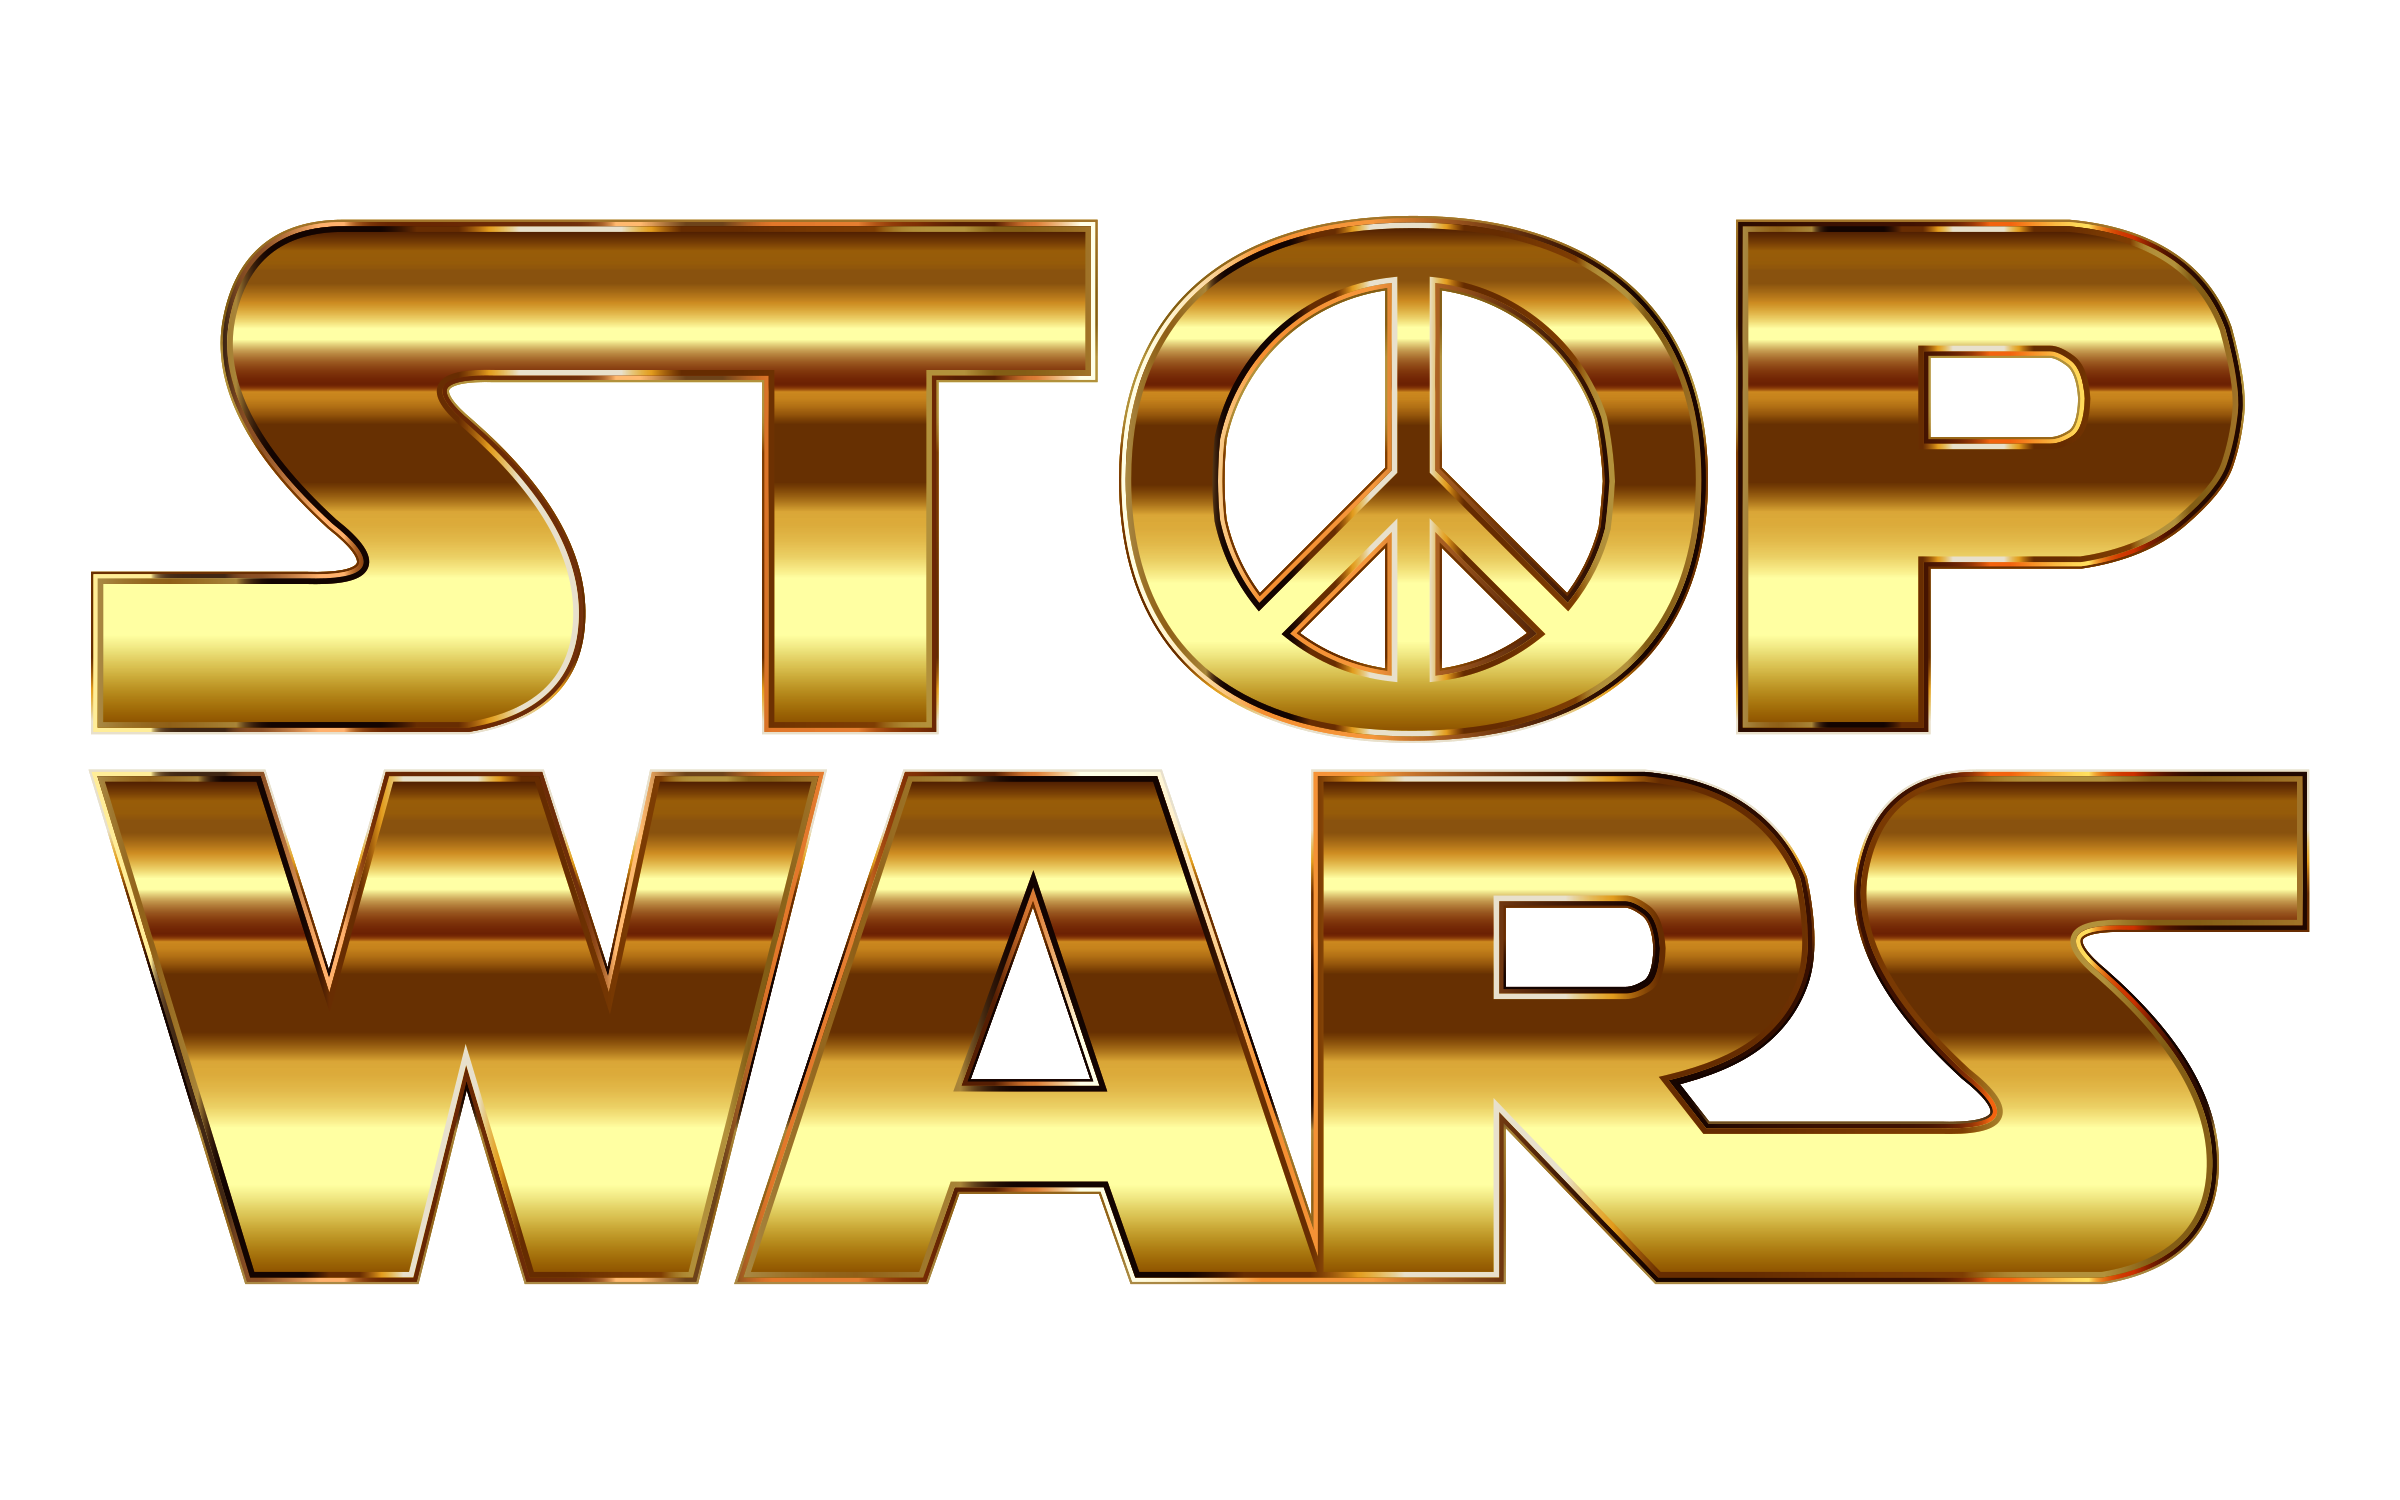 Stop wars gold deeper. Color clipart background